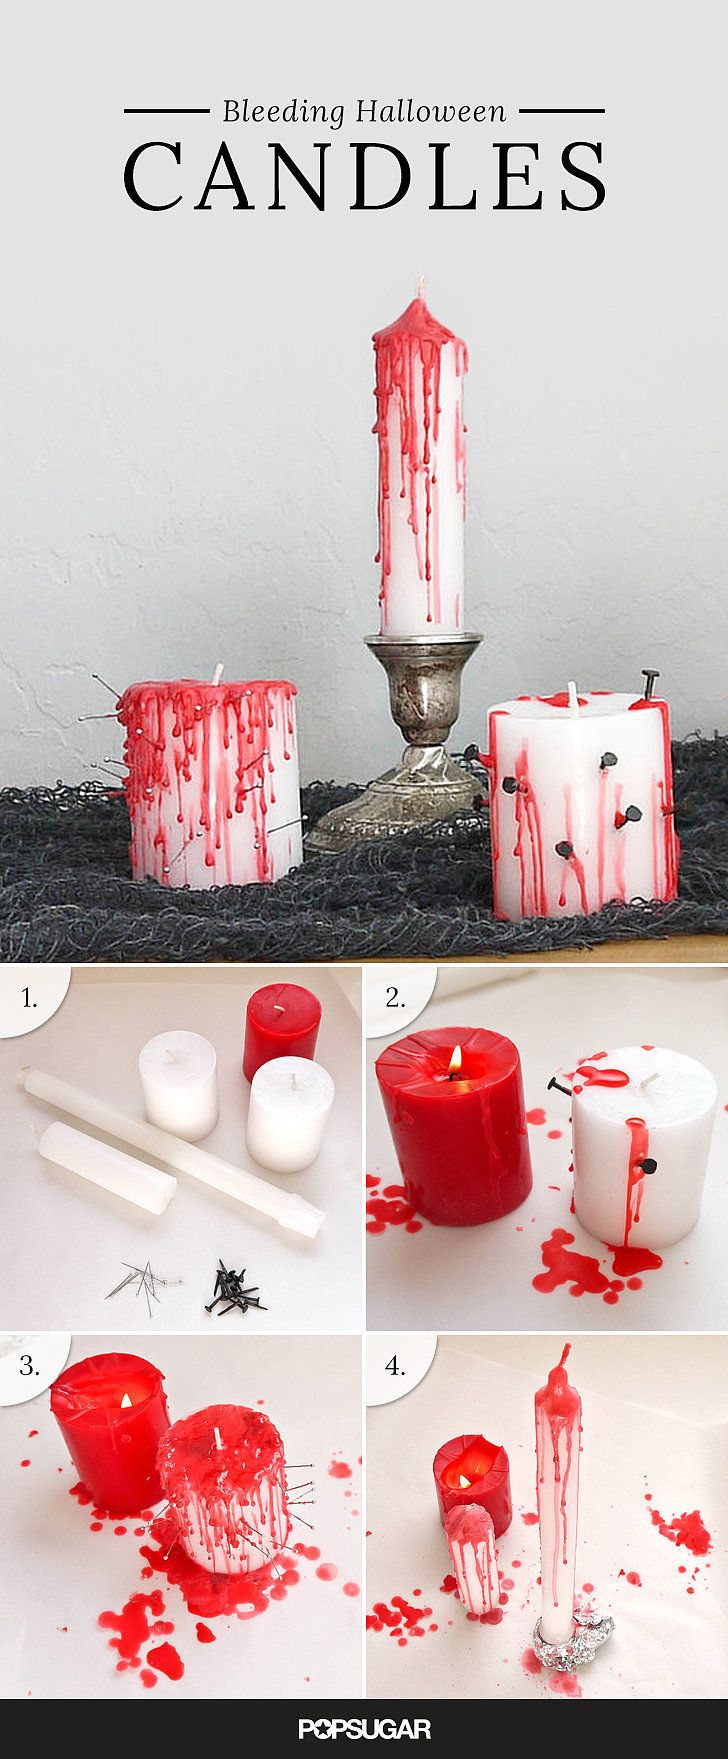 Transform dollar store candles into bleeding votives that really set the tone for an eerie evening of Halloween fun